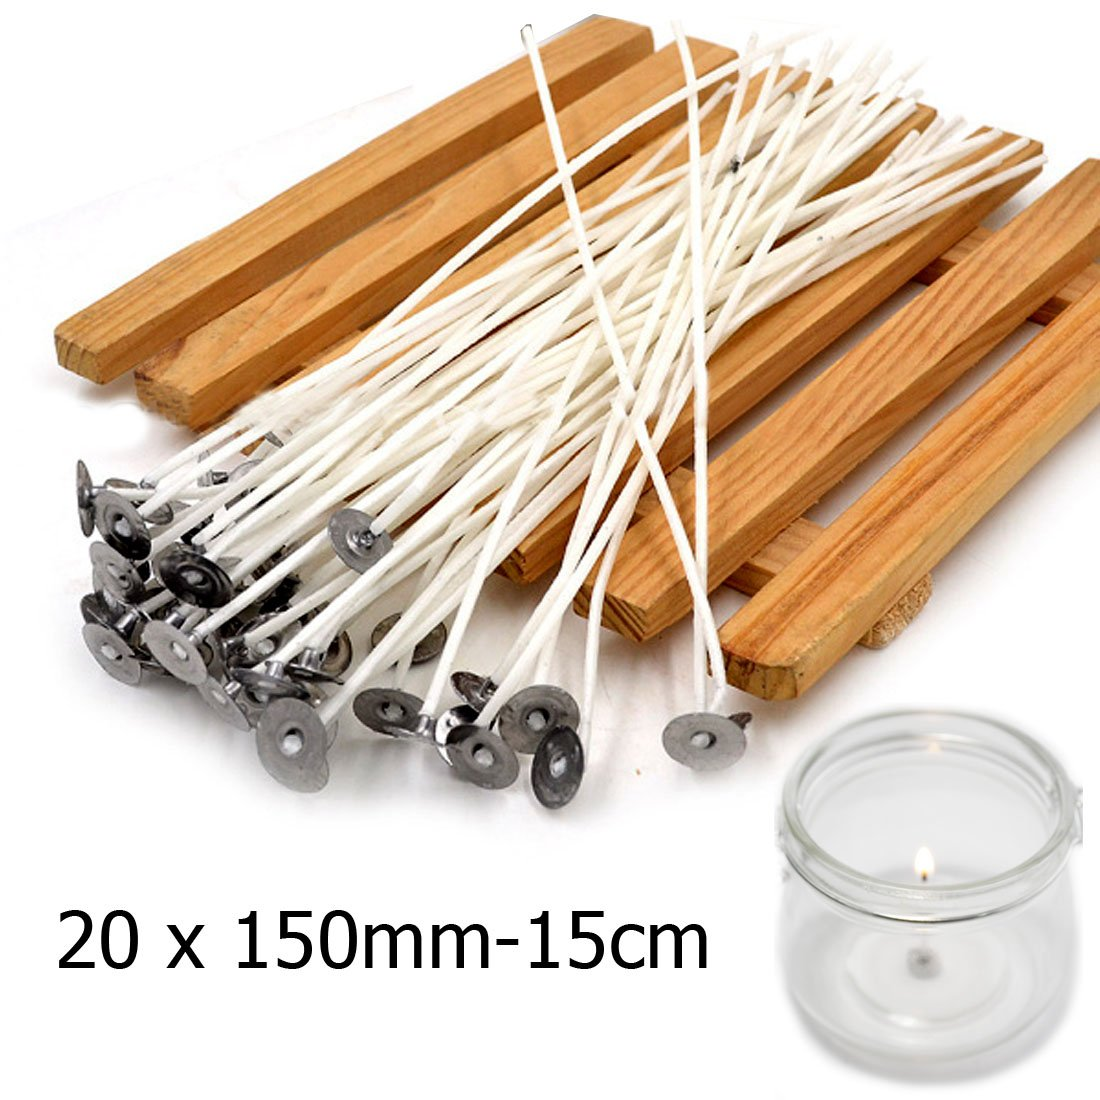 JJOnlineStore - Long Pre Waxed White Cotton Core Candle Wicks Making with Sustainers (20, 15cm/5.9